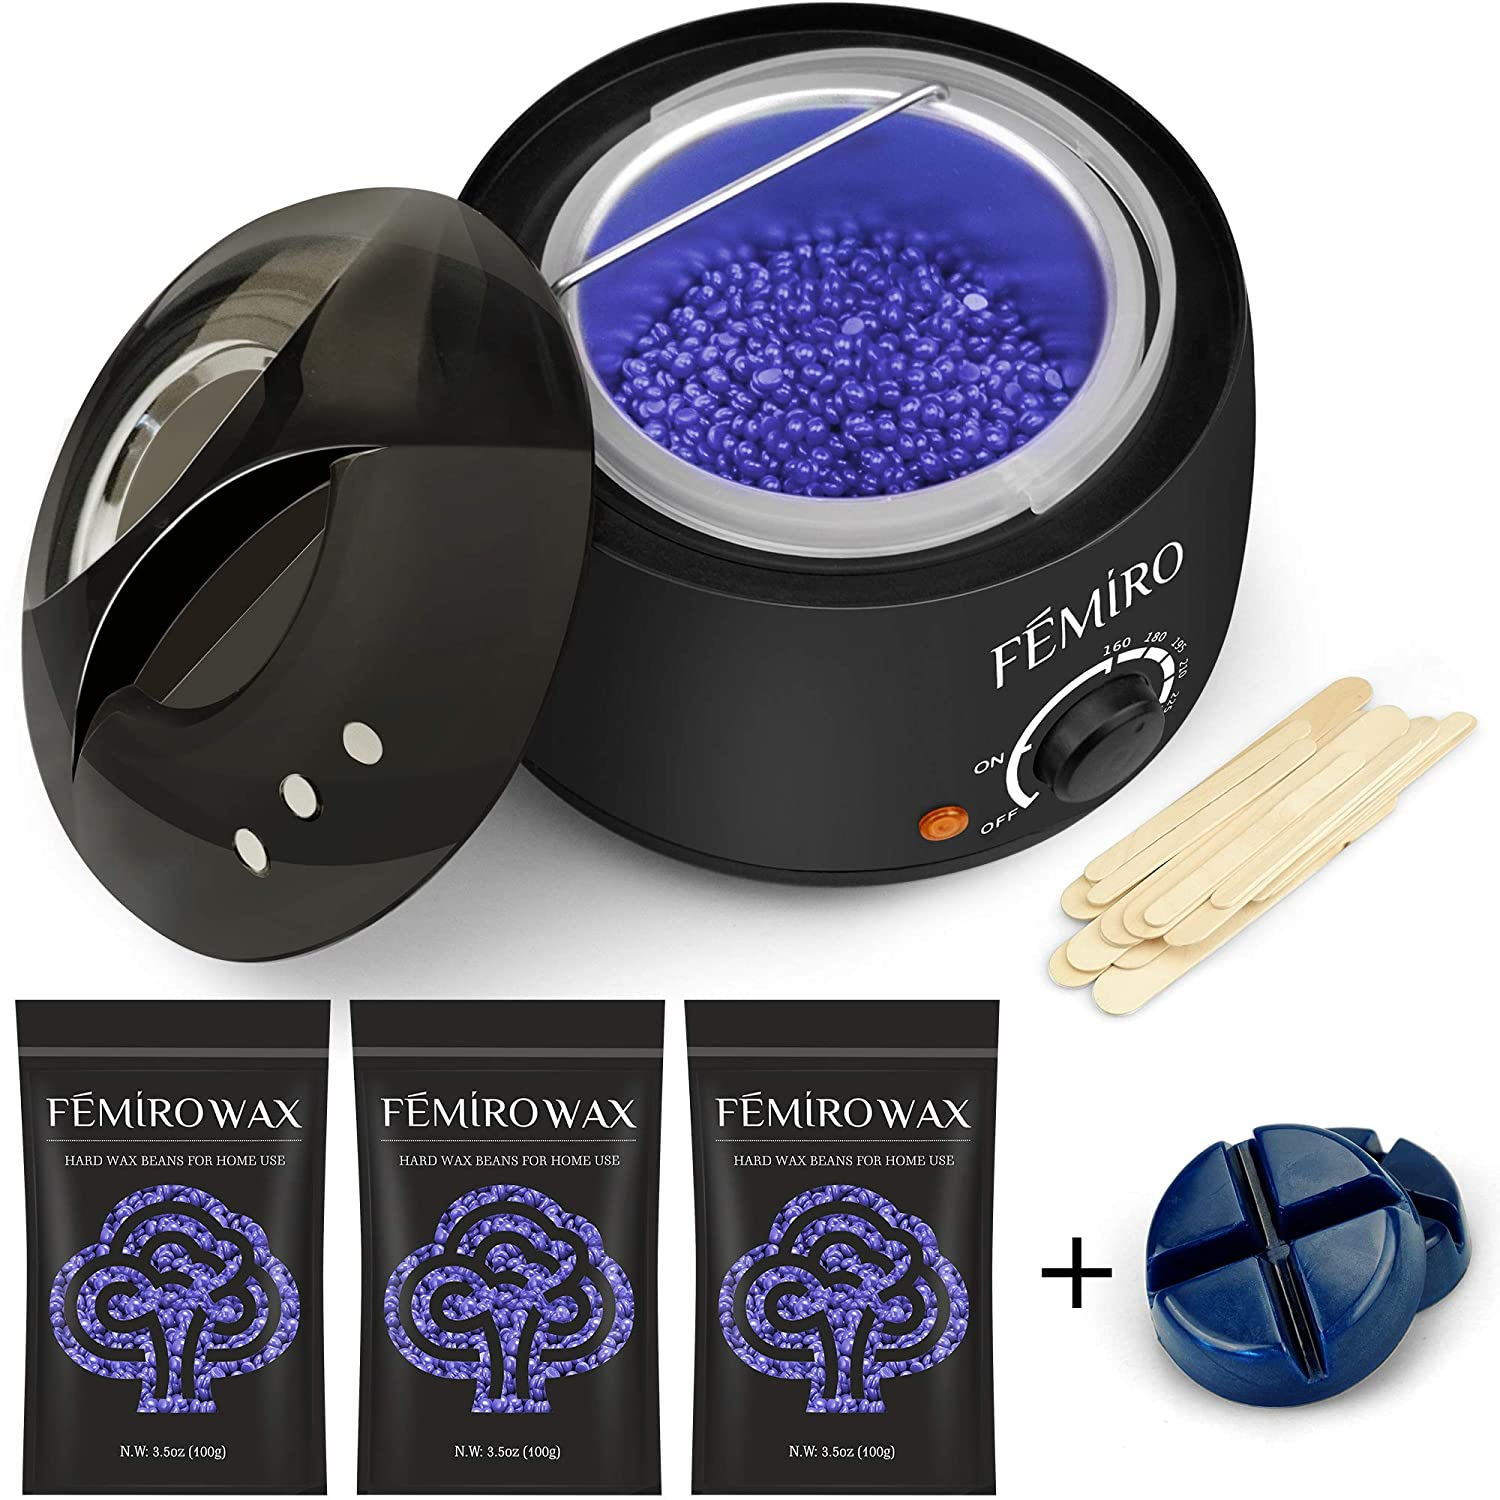 Waxing Kit, Femiro Wax Warmer Painless Hair Removal Wax Kit with 4 Bags Hard Wax (3.5oz/bag) 20 Wax Applicator Sticks for Full Body, Legs, Face, Eyebrows, Bikini Women Men At Home Waxing